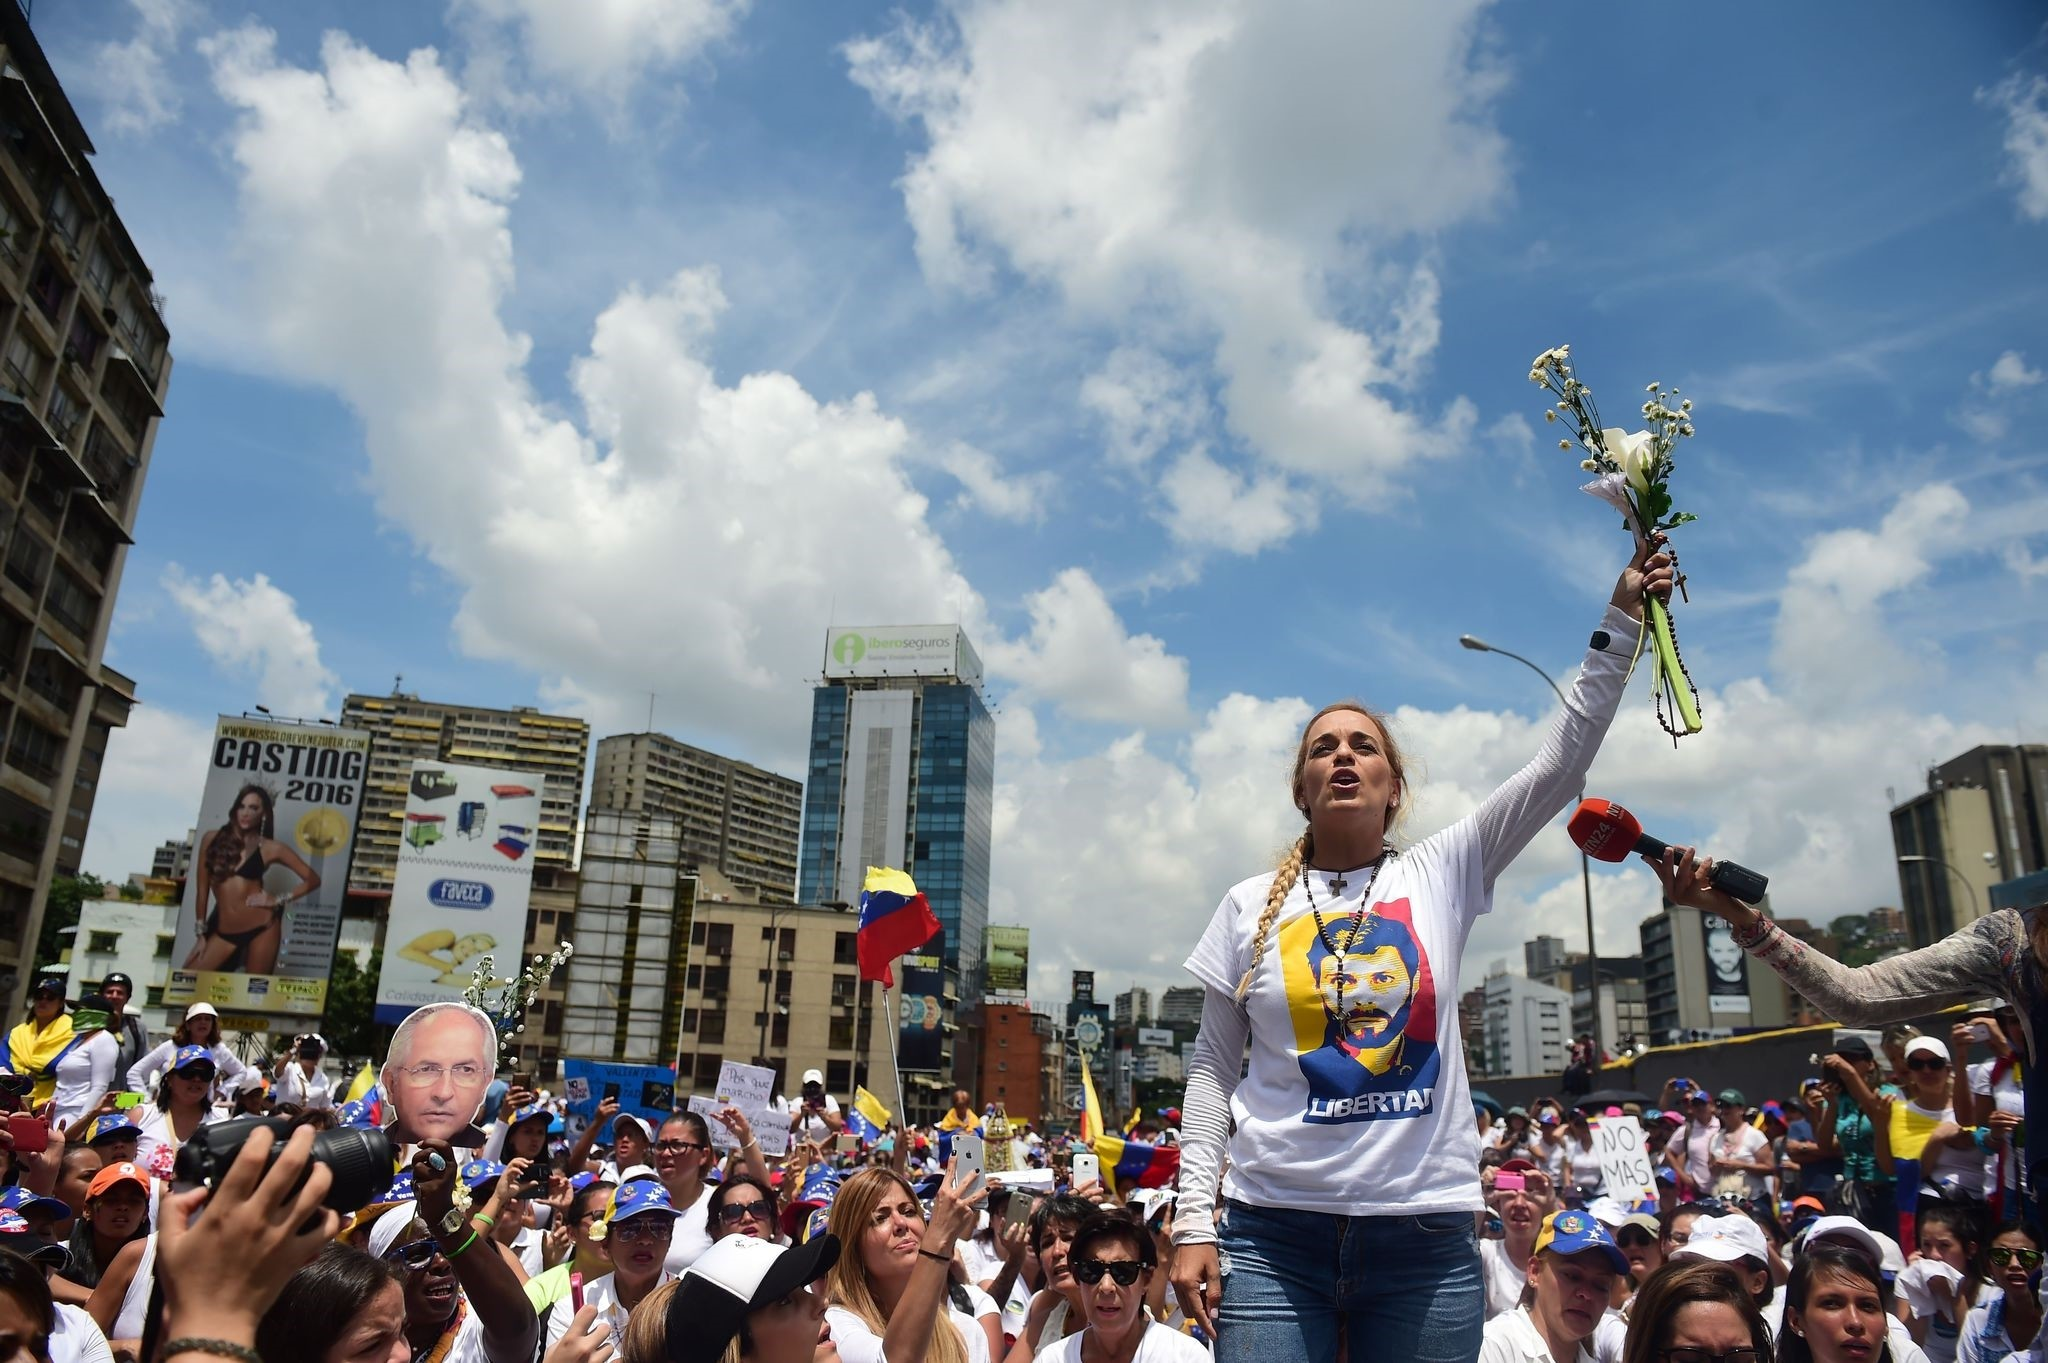 The wife of imprisoned opposition leader Leopoldo Lopez, Lilian Tintori, takes part in a women's march aimed to keep pressure on President Nicolas Maduro. (AFP Photo)